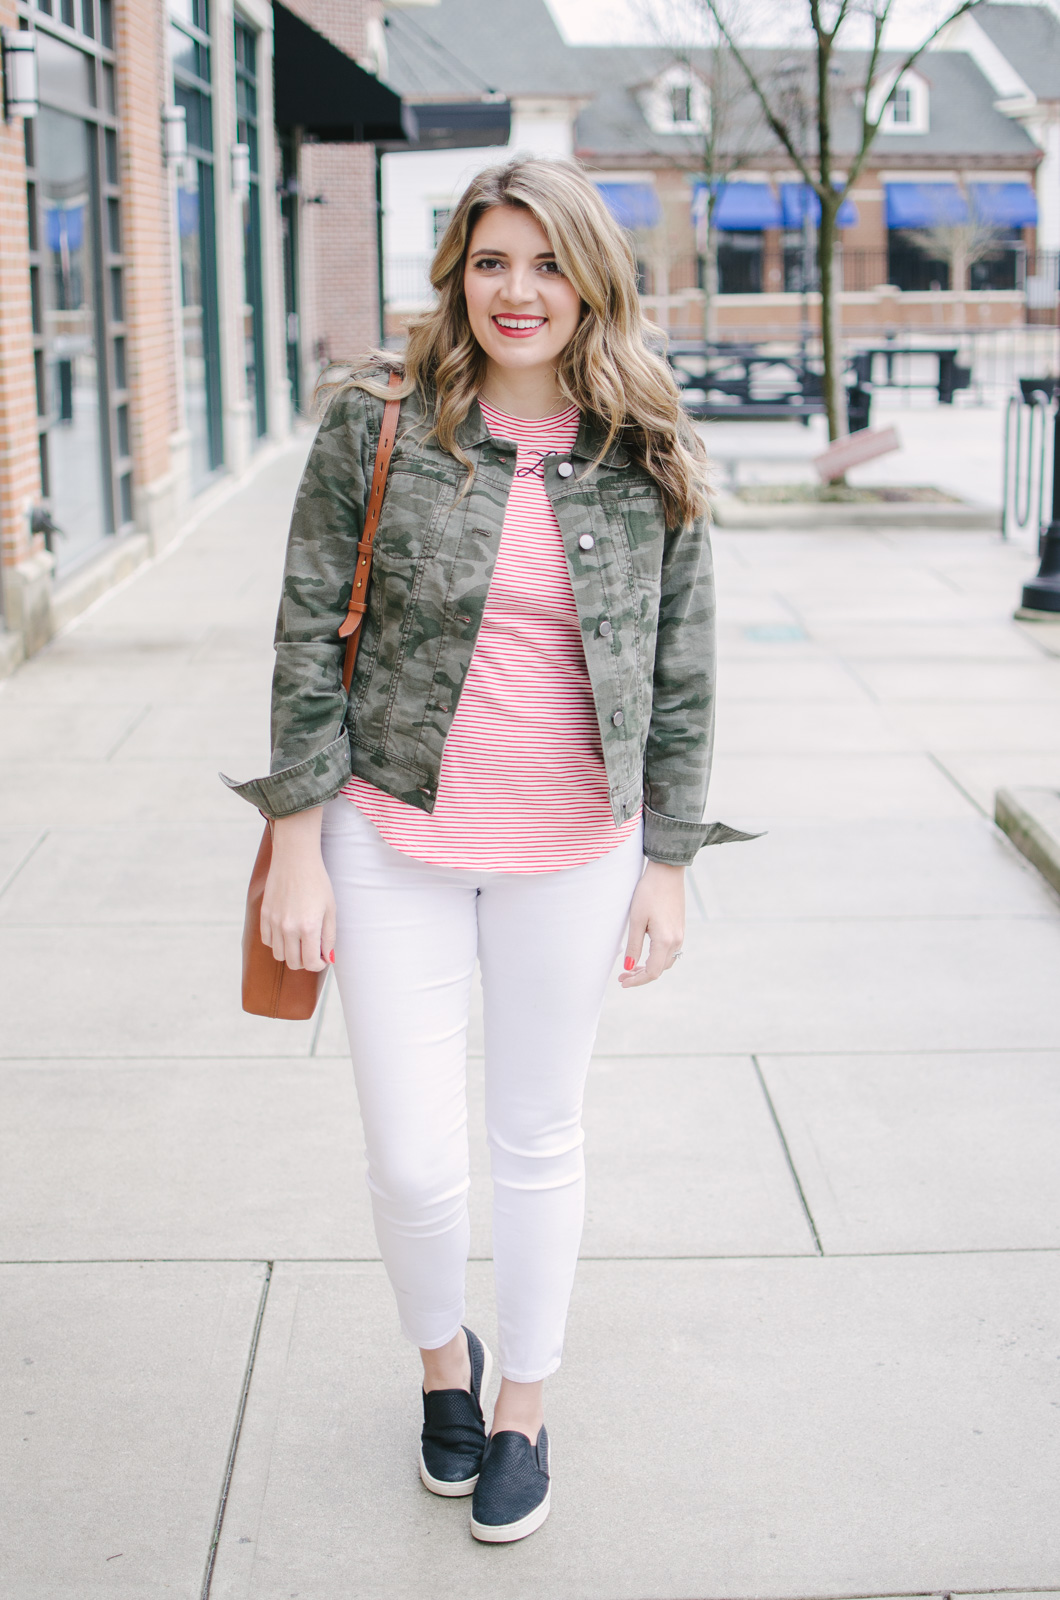 stripes camo spring outfit - cutest spring print mix! | See more cute spring outfits at bylaurenm.com!